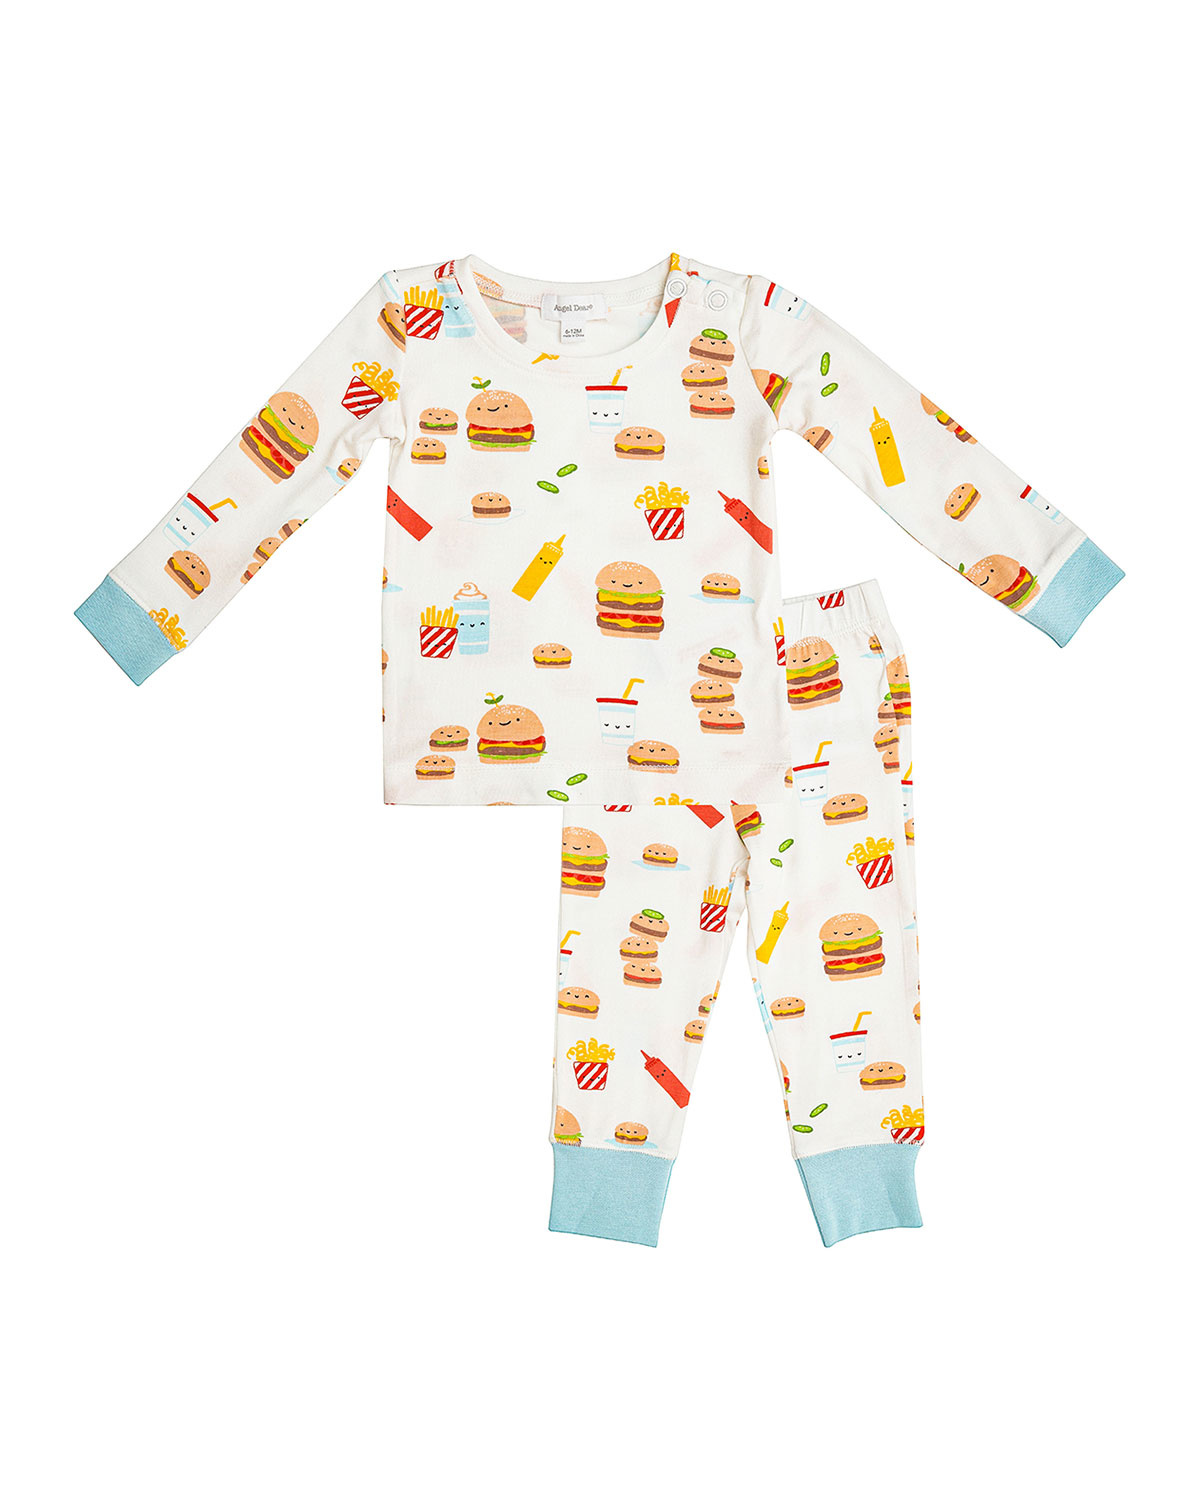 Angel Dear Burger Joint Lounge Wear Set